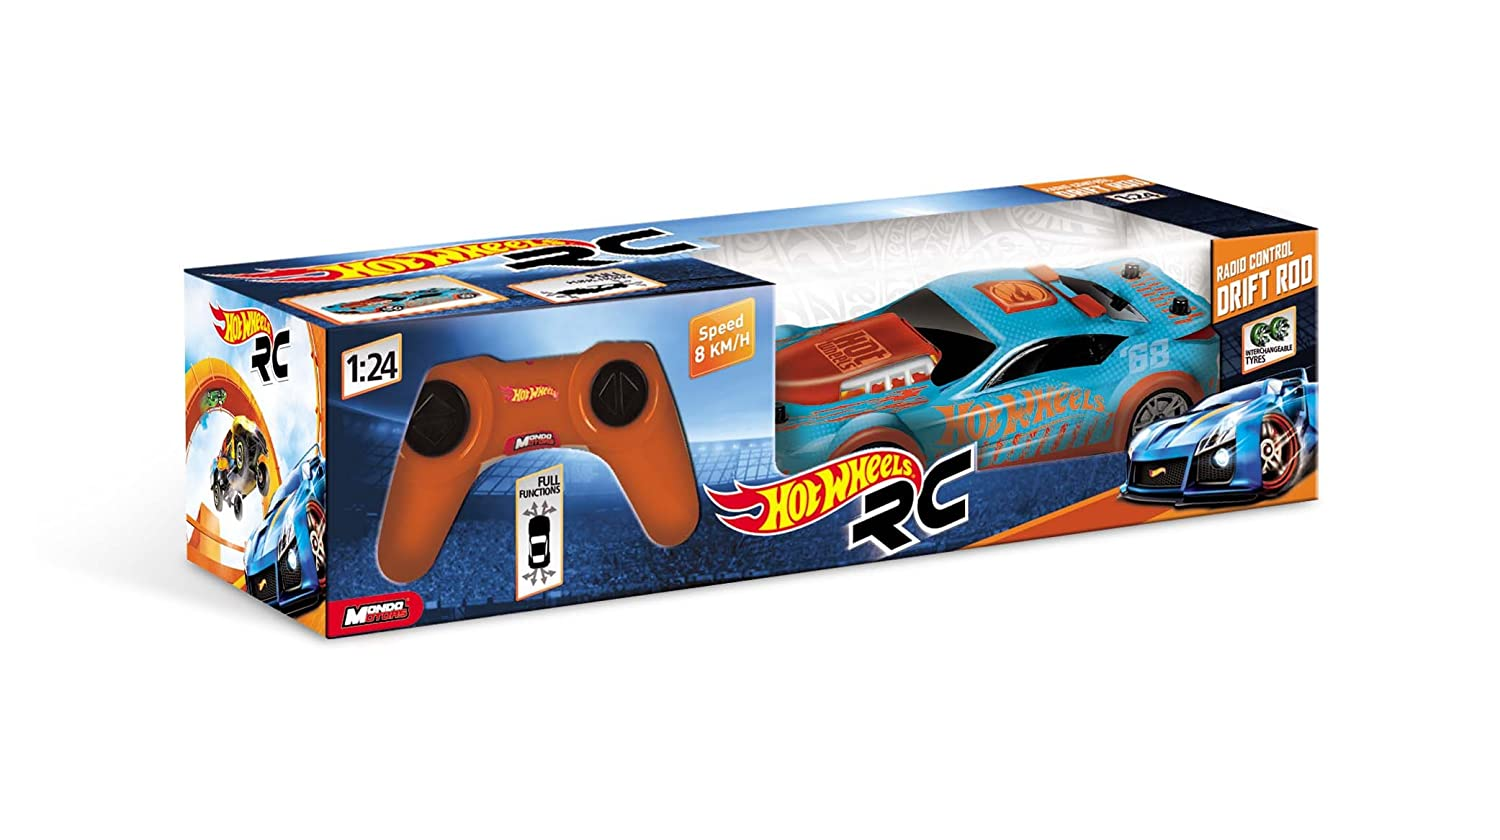 Hot Wheels Scale Drift Rod Radio Controlled Car Amazon Co Uk